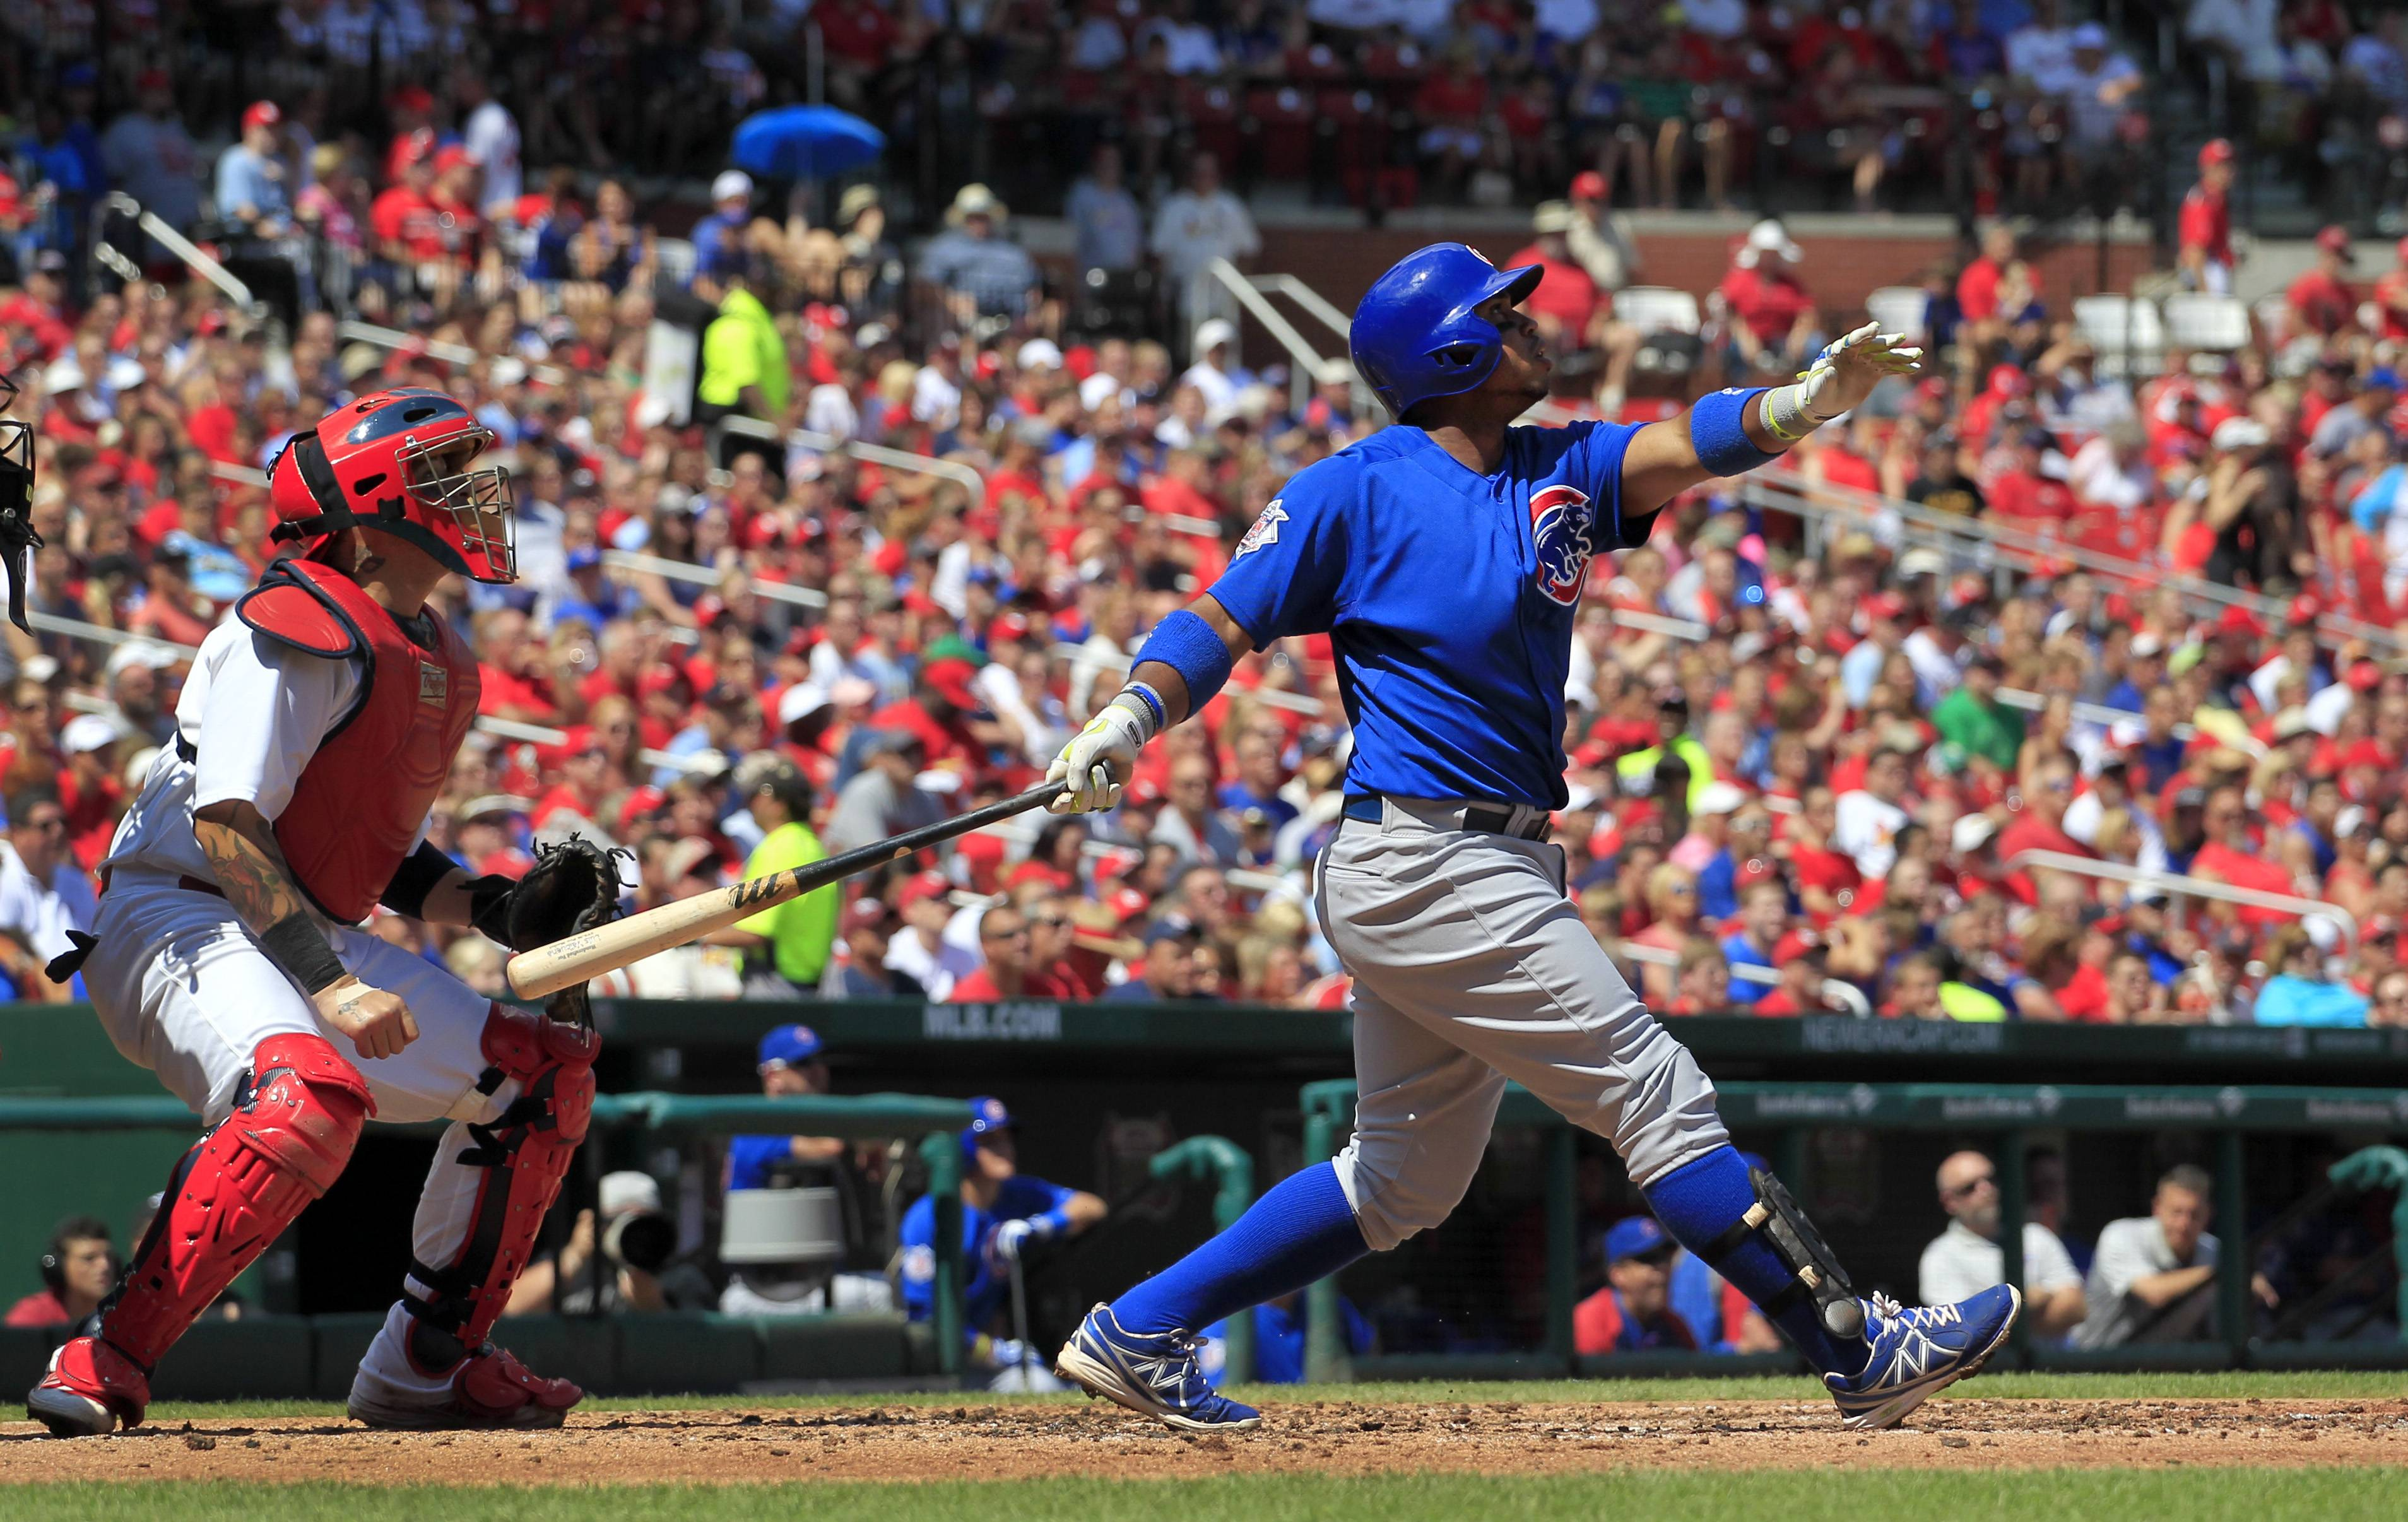 Chicago Cubs' Luis Valbuena, right, and St. Louis Cardinals catcher Yadier Molina watch Valbuena's two-run home run during the second inning of a baseball game Sunday, Aug. 31, 2014, in St. Louis.